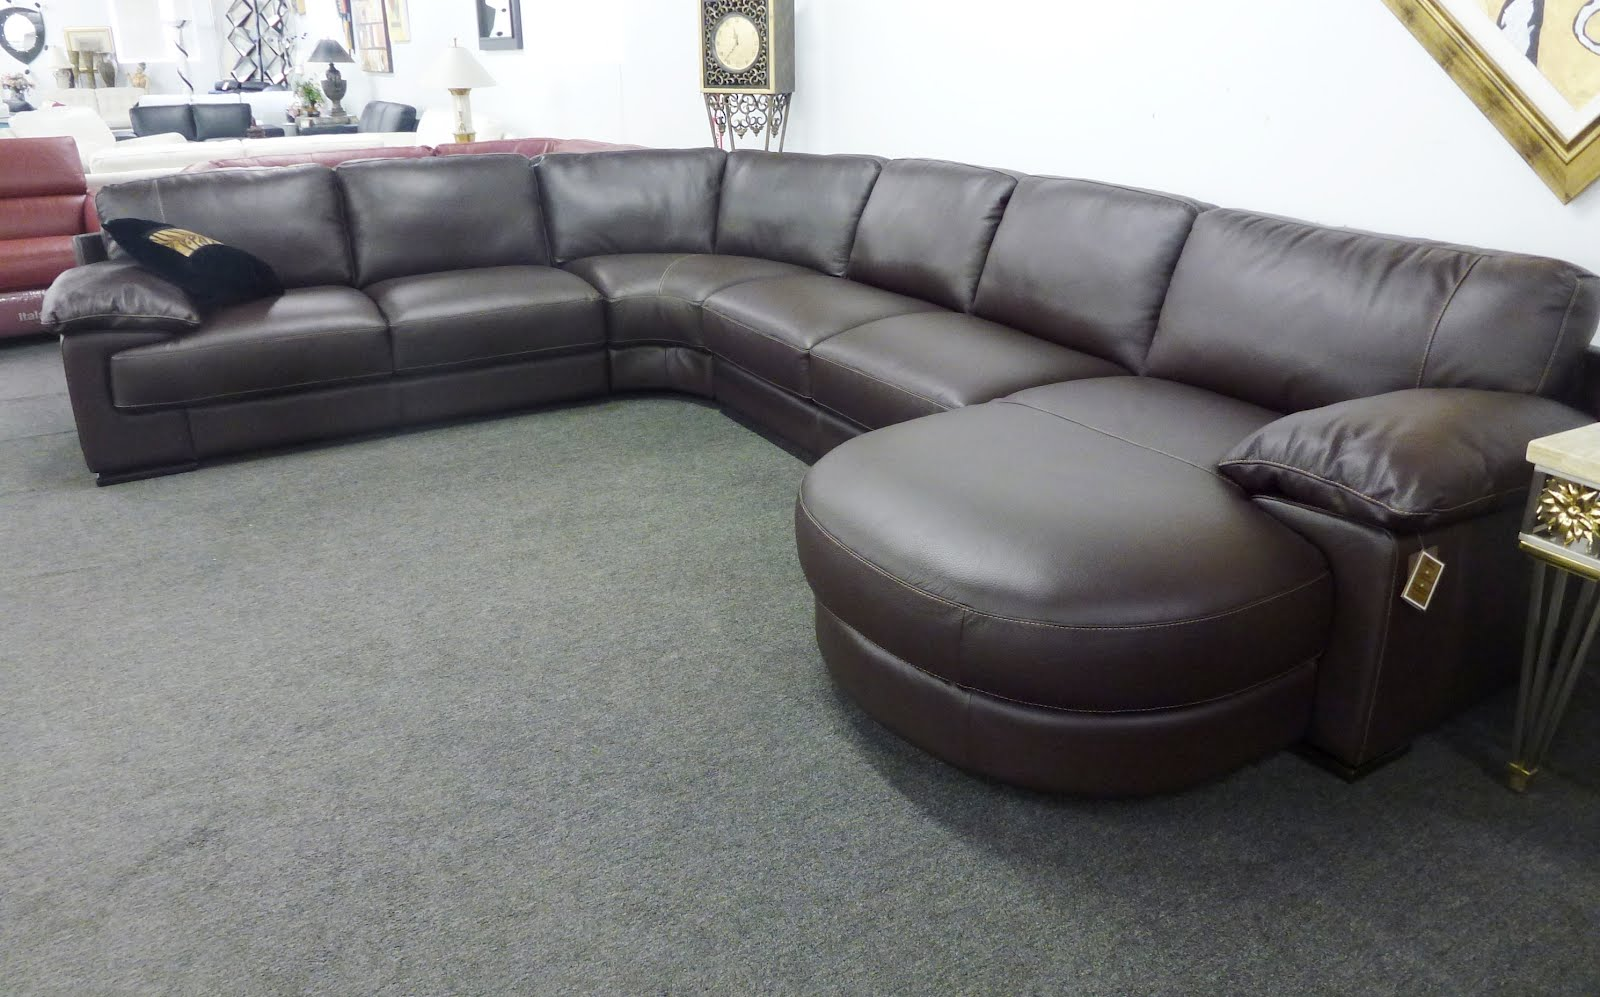 Natuzzi Leather Sofas Sectionals By Interior Concepts Furniture Natuzzi Leather Sectional